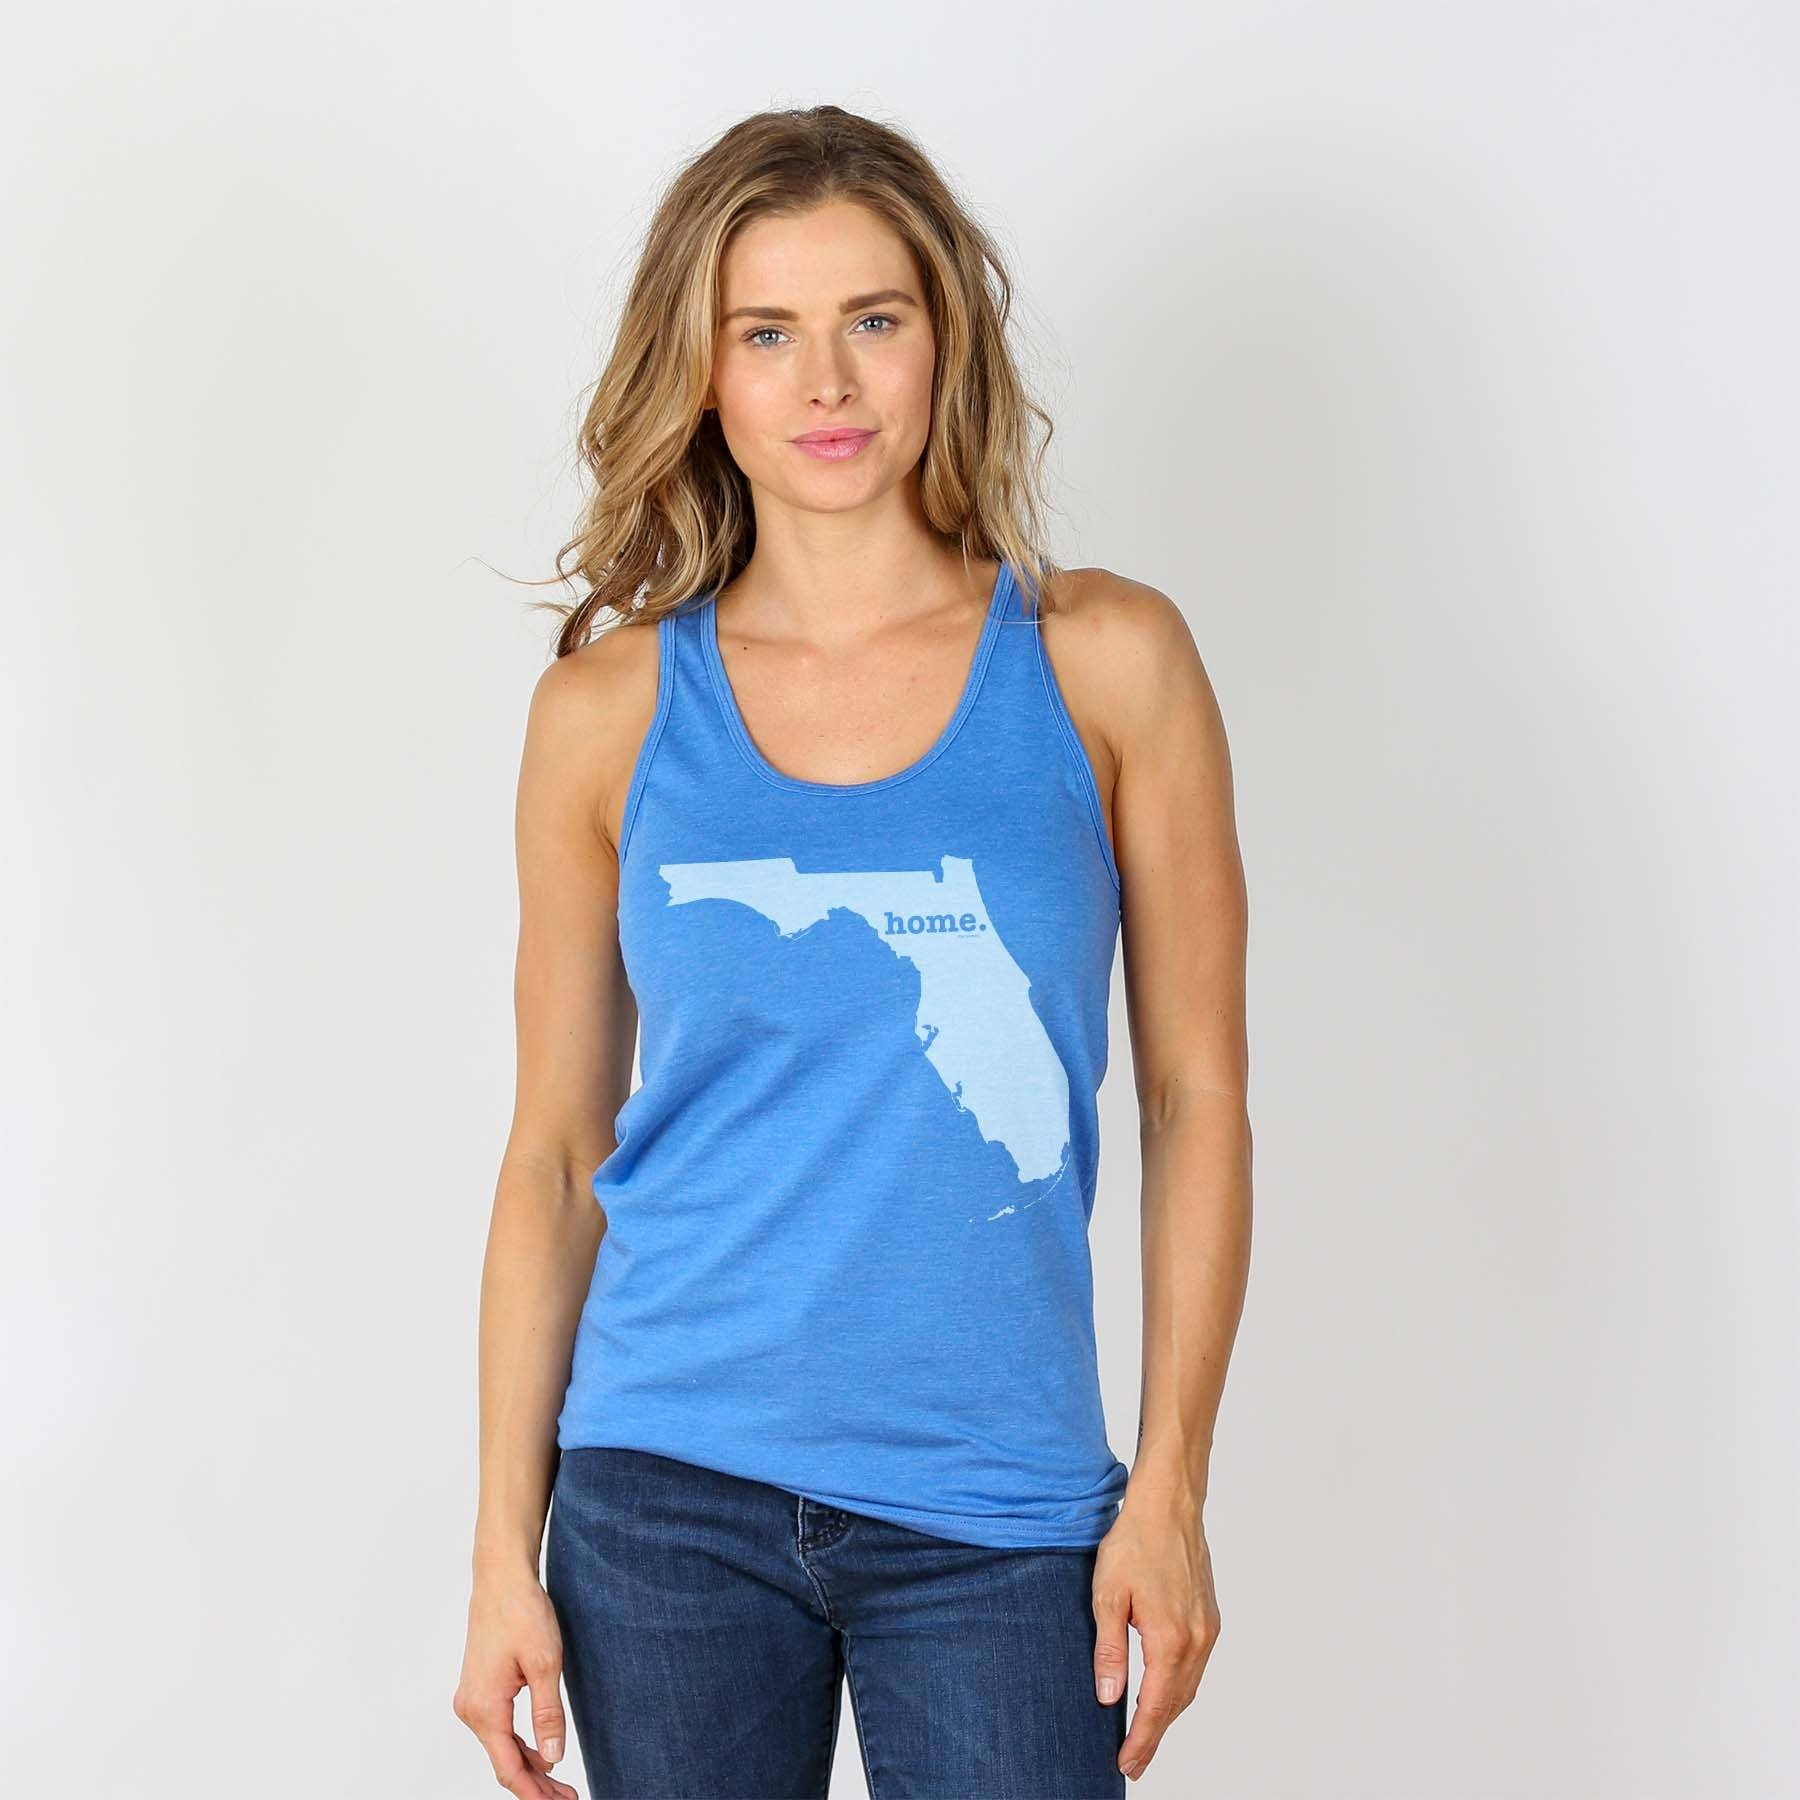 Florida Home Tank Top